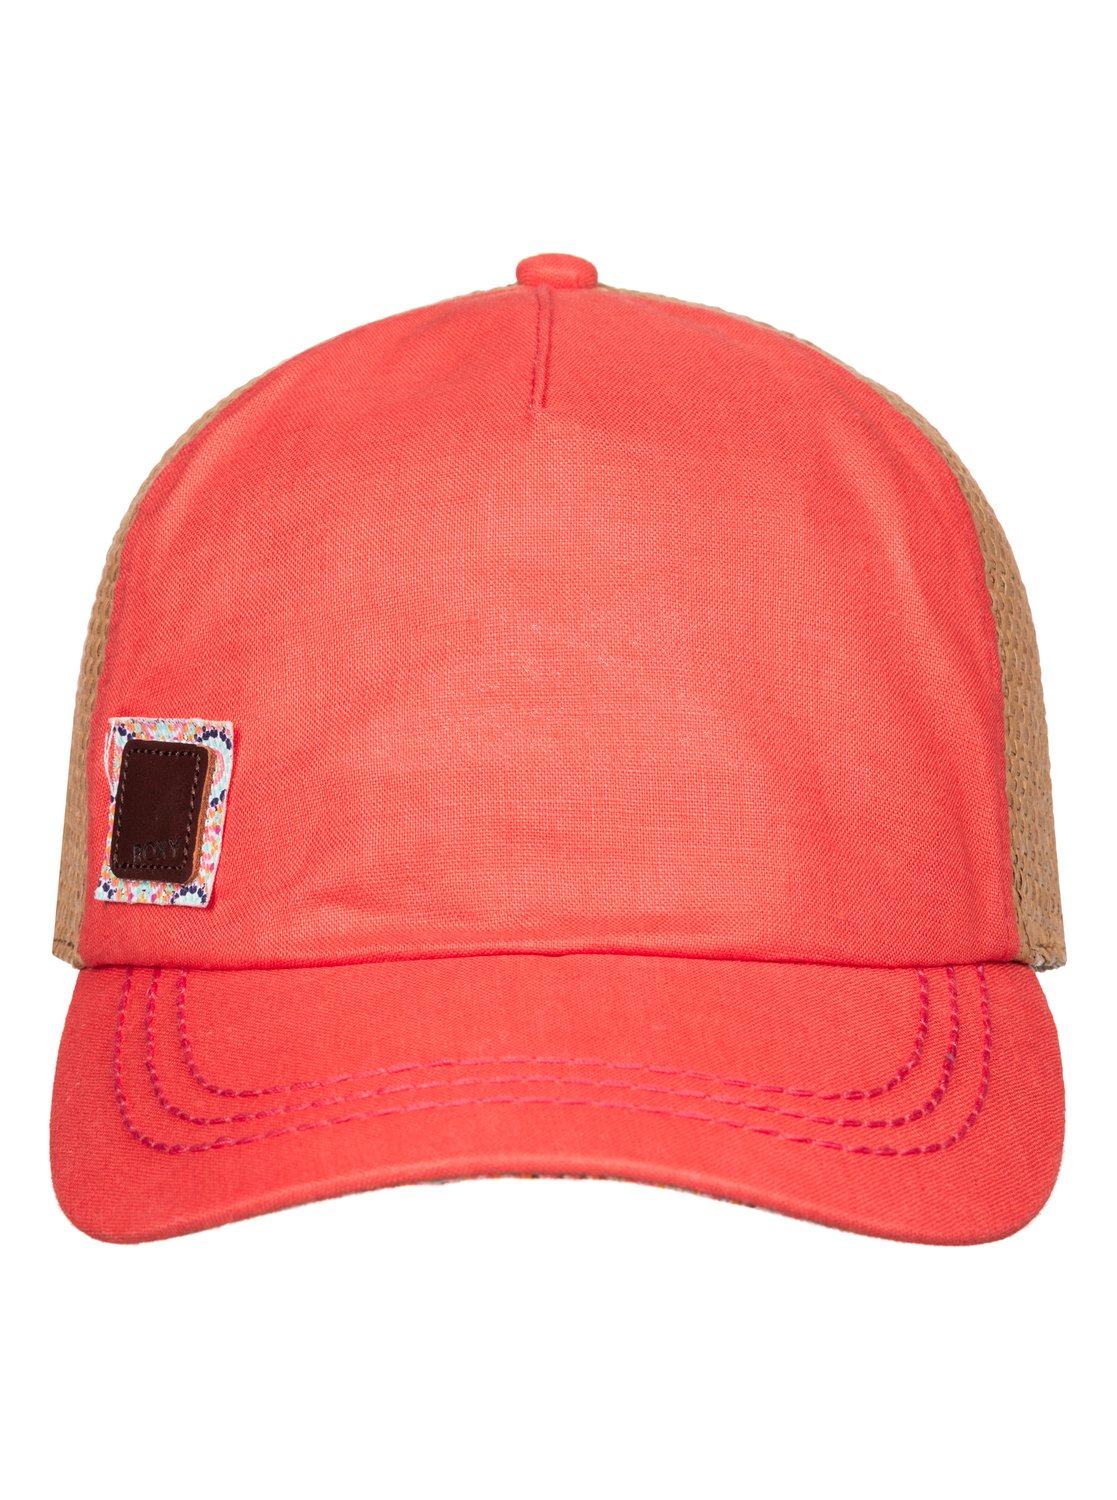 incognito straw baseball hat 889351058966